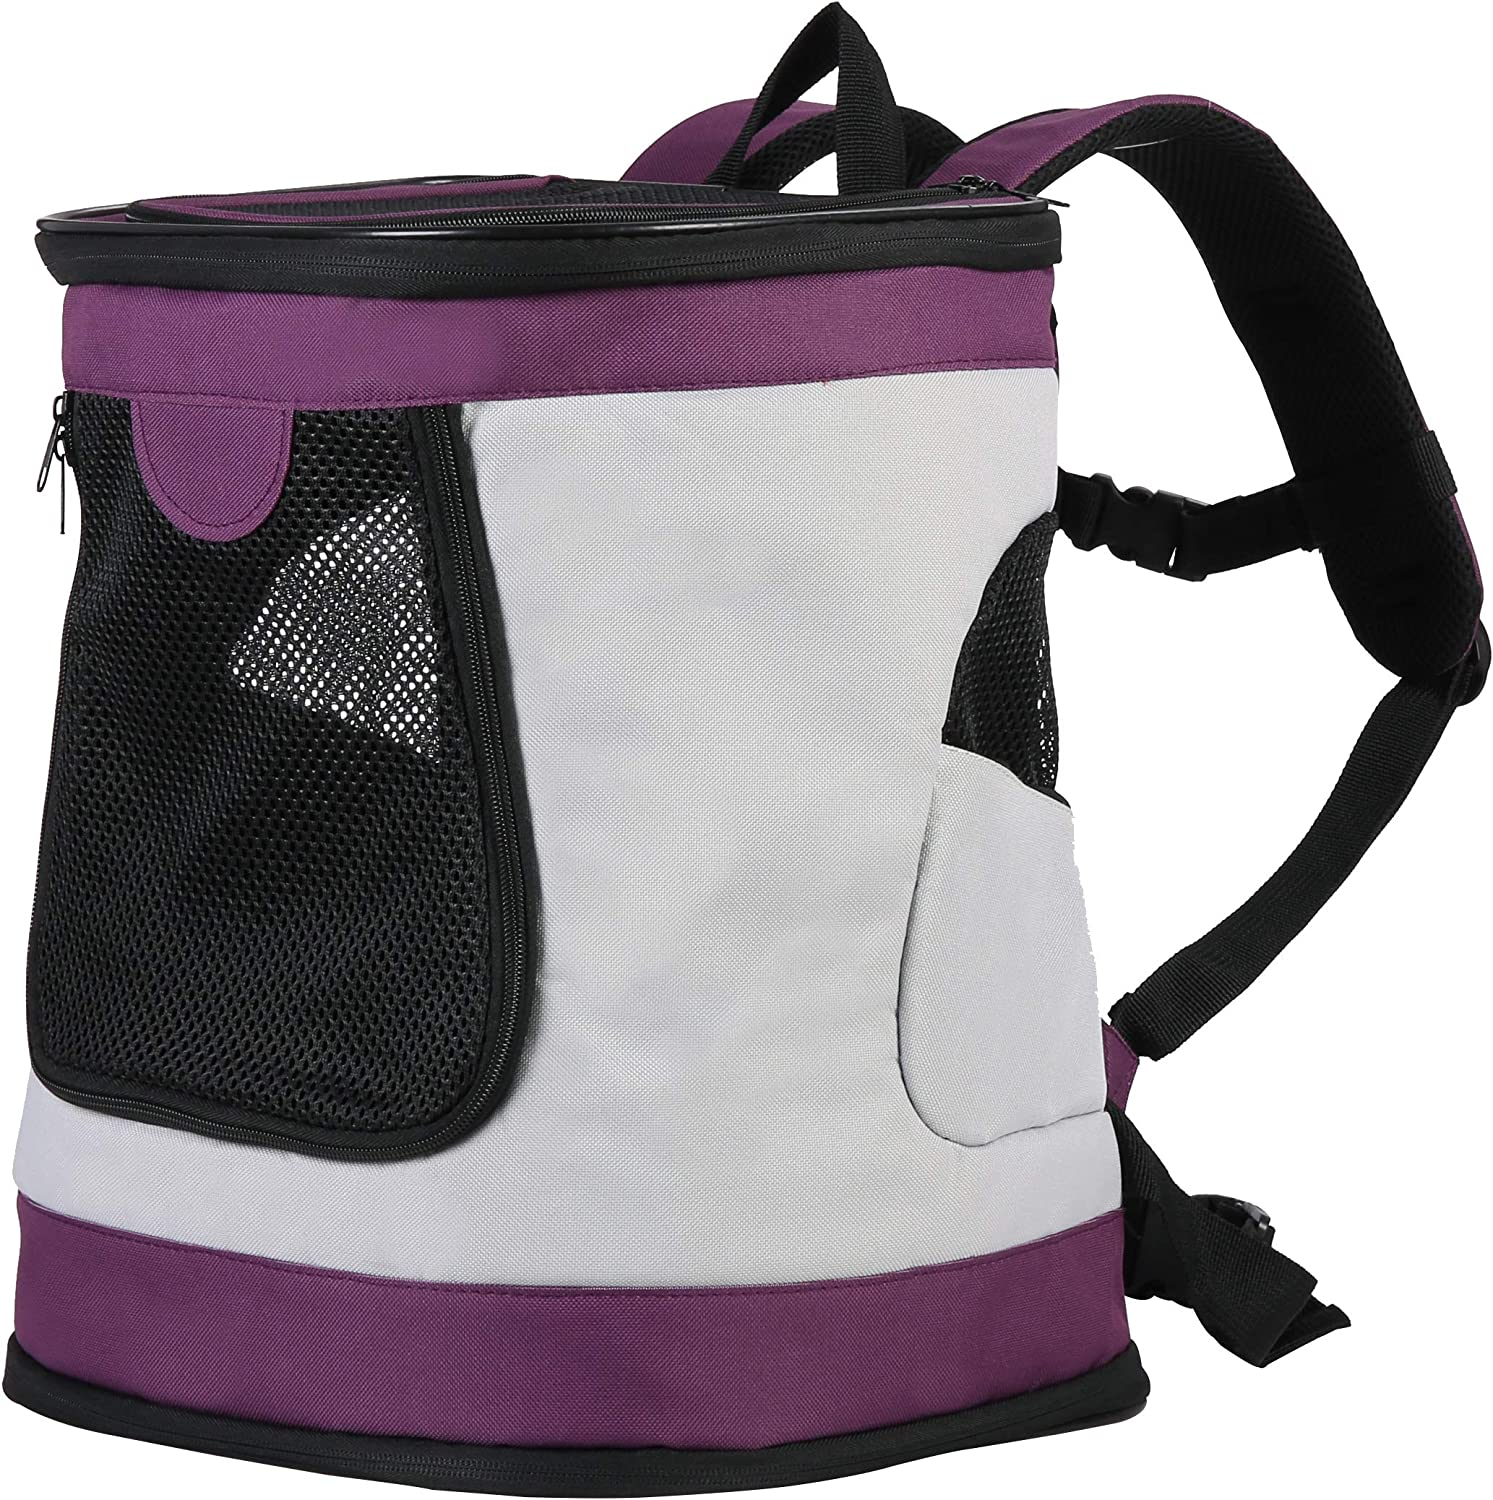 Iconic Pet 51584 Foldable Pet Backpack Carrier for Dogs & Catsup to 16 Lbs